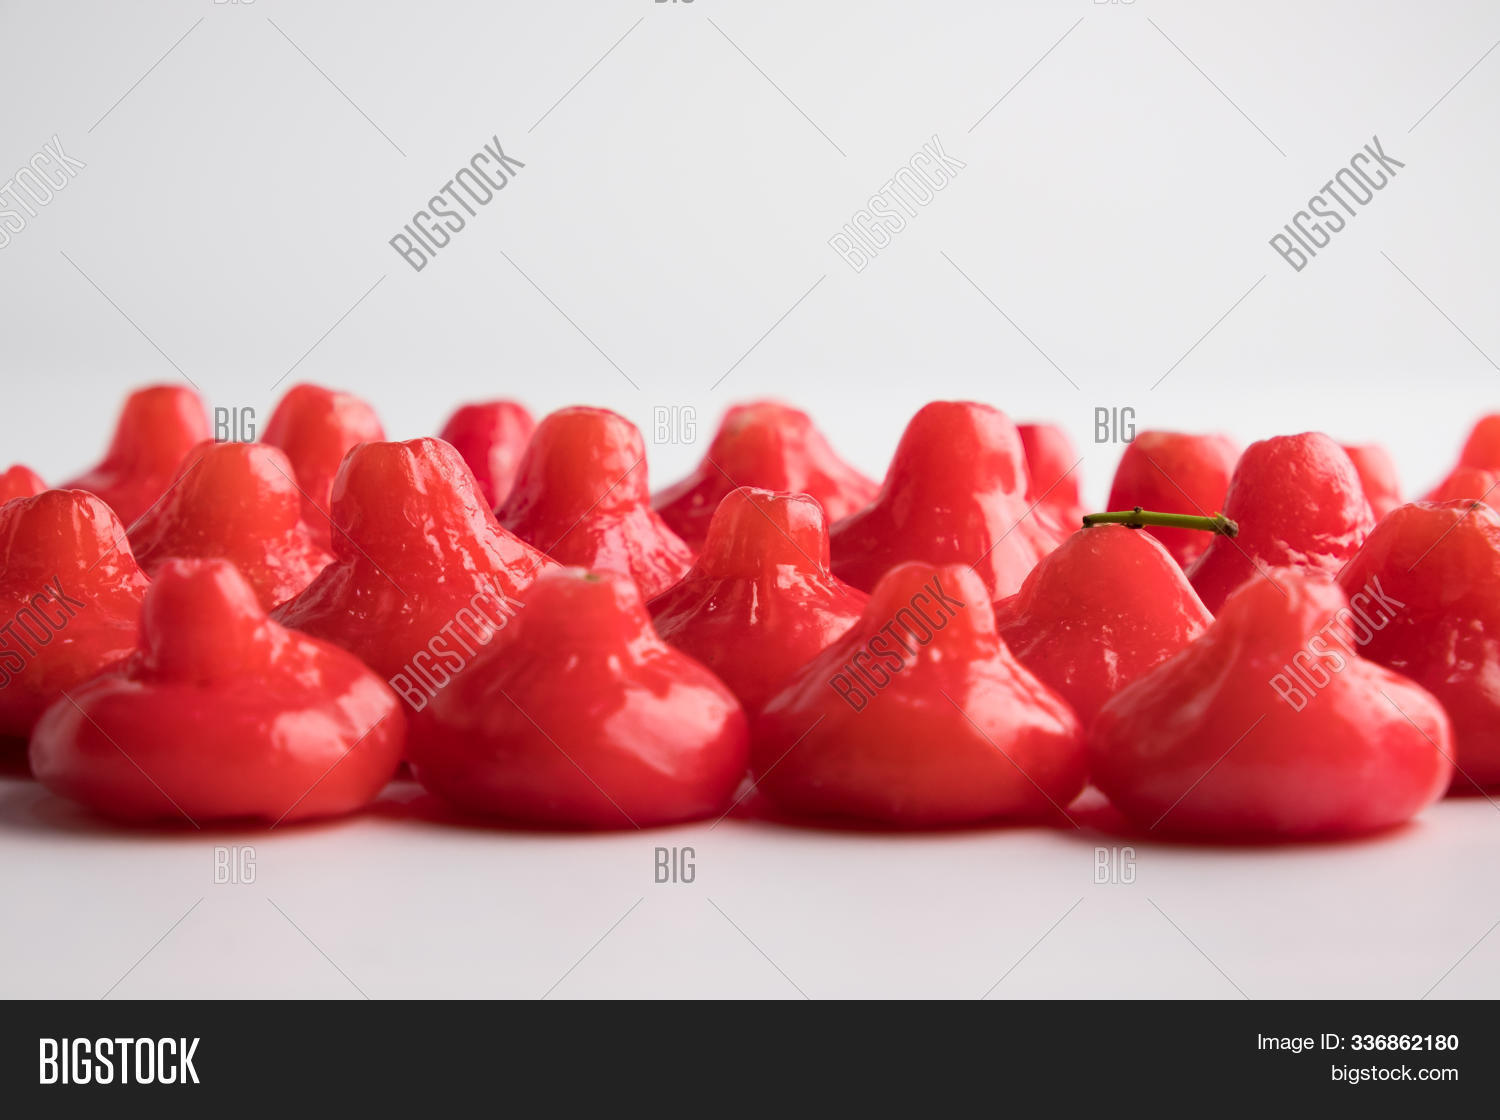 agriculture,antioxidant,apple,asia,background,beautiful,bell,bowl,chomphu,close,crop,decoration,delicious,diet,eating,food,fresh,freshness,fruit,group,harvest,health,healthy,leaf,little,lycopene,natural,nature,nutrient,nutrition,organic,pink,red,ripe,rose,sweet,tasty,thailand,tropical,up,vitamin,white